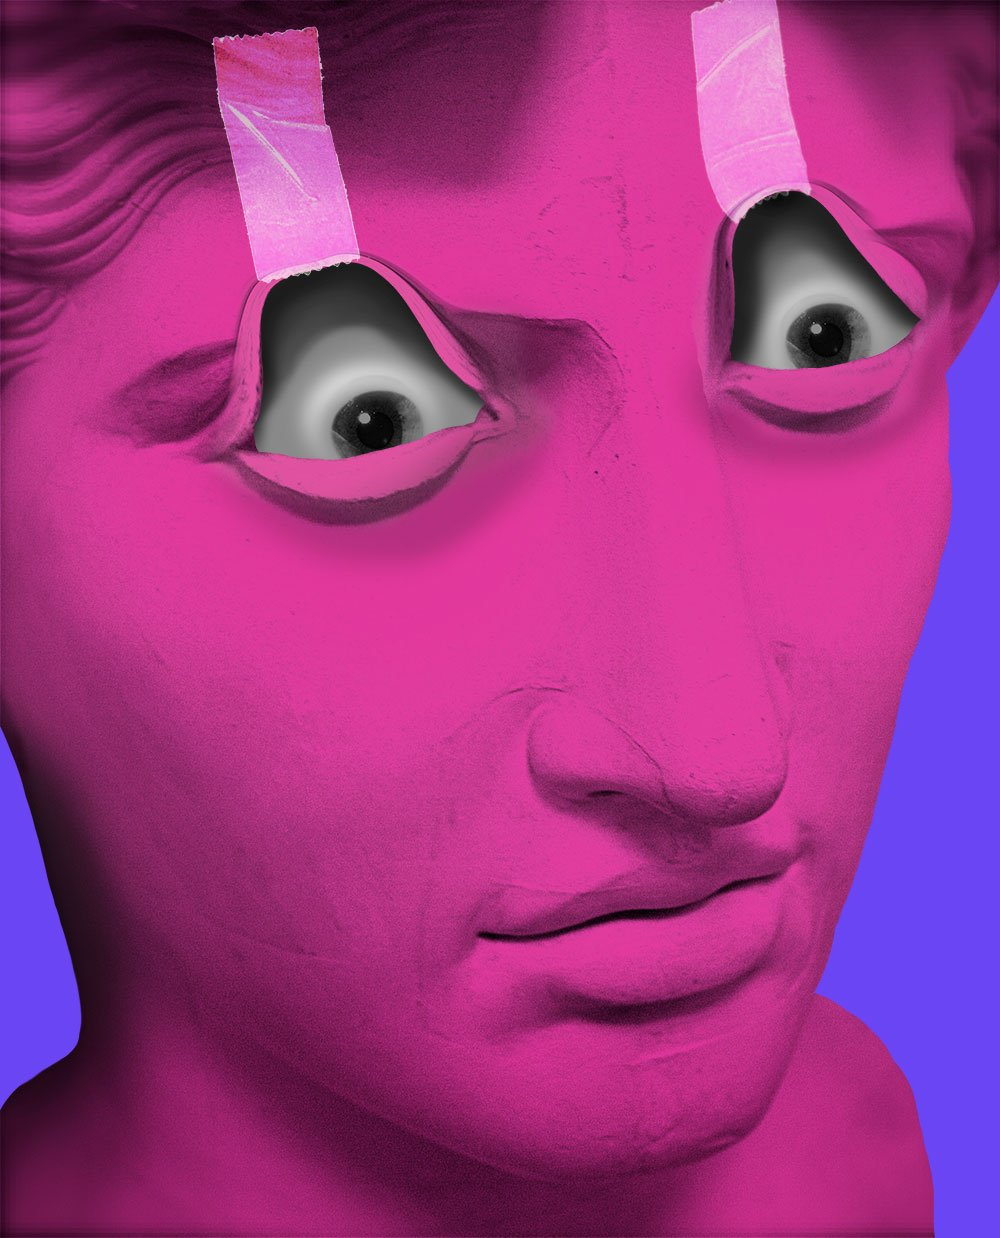 freddiemade, statue, digital art, visual art, contemporary art, scandale project,